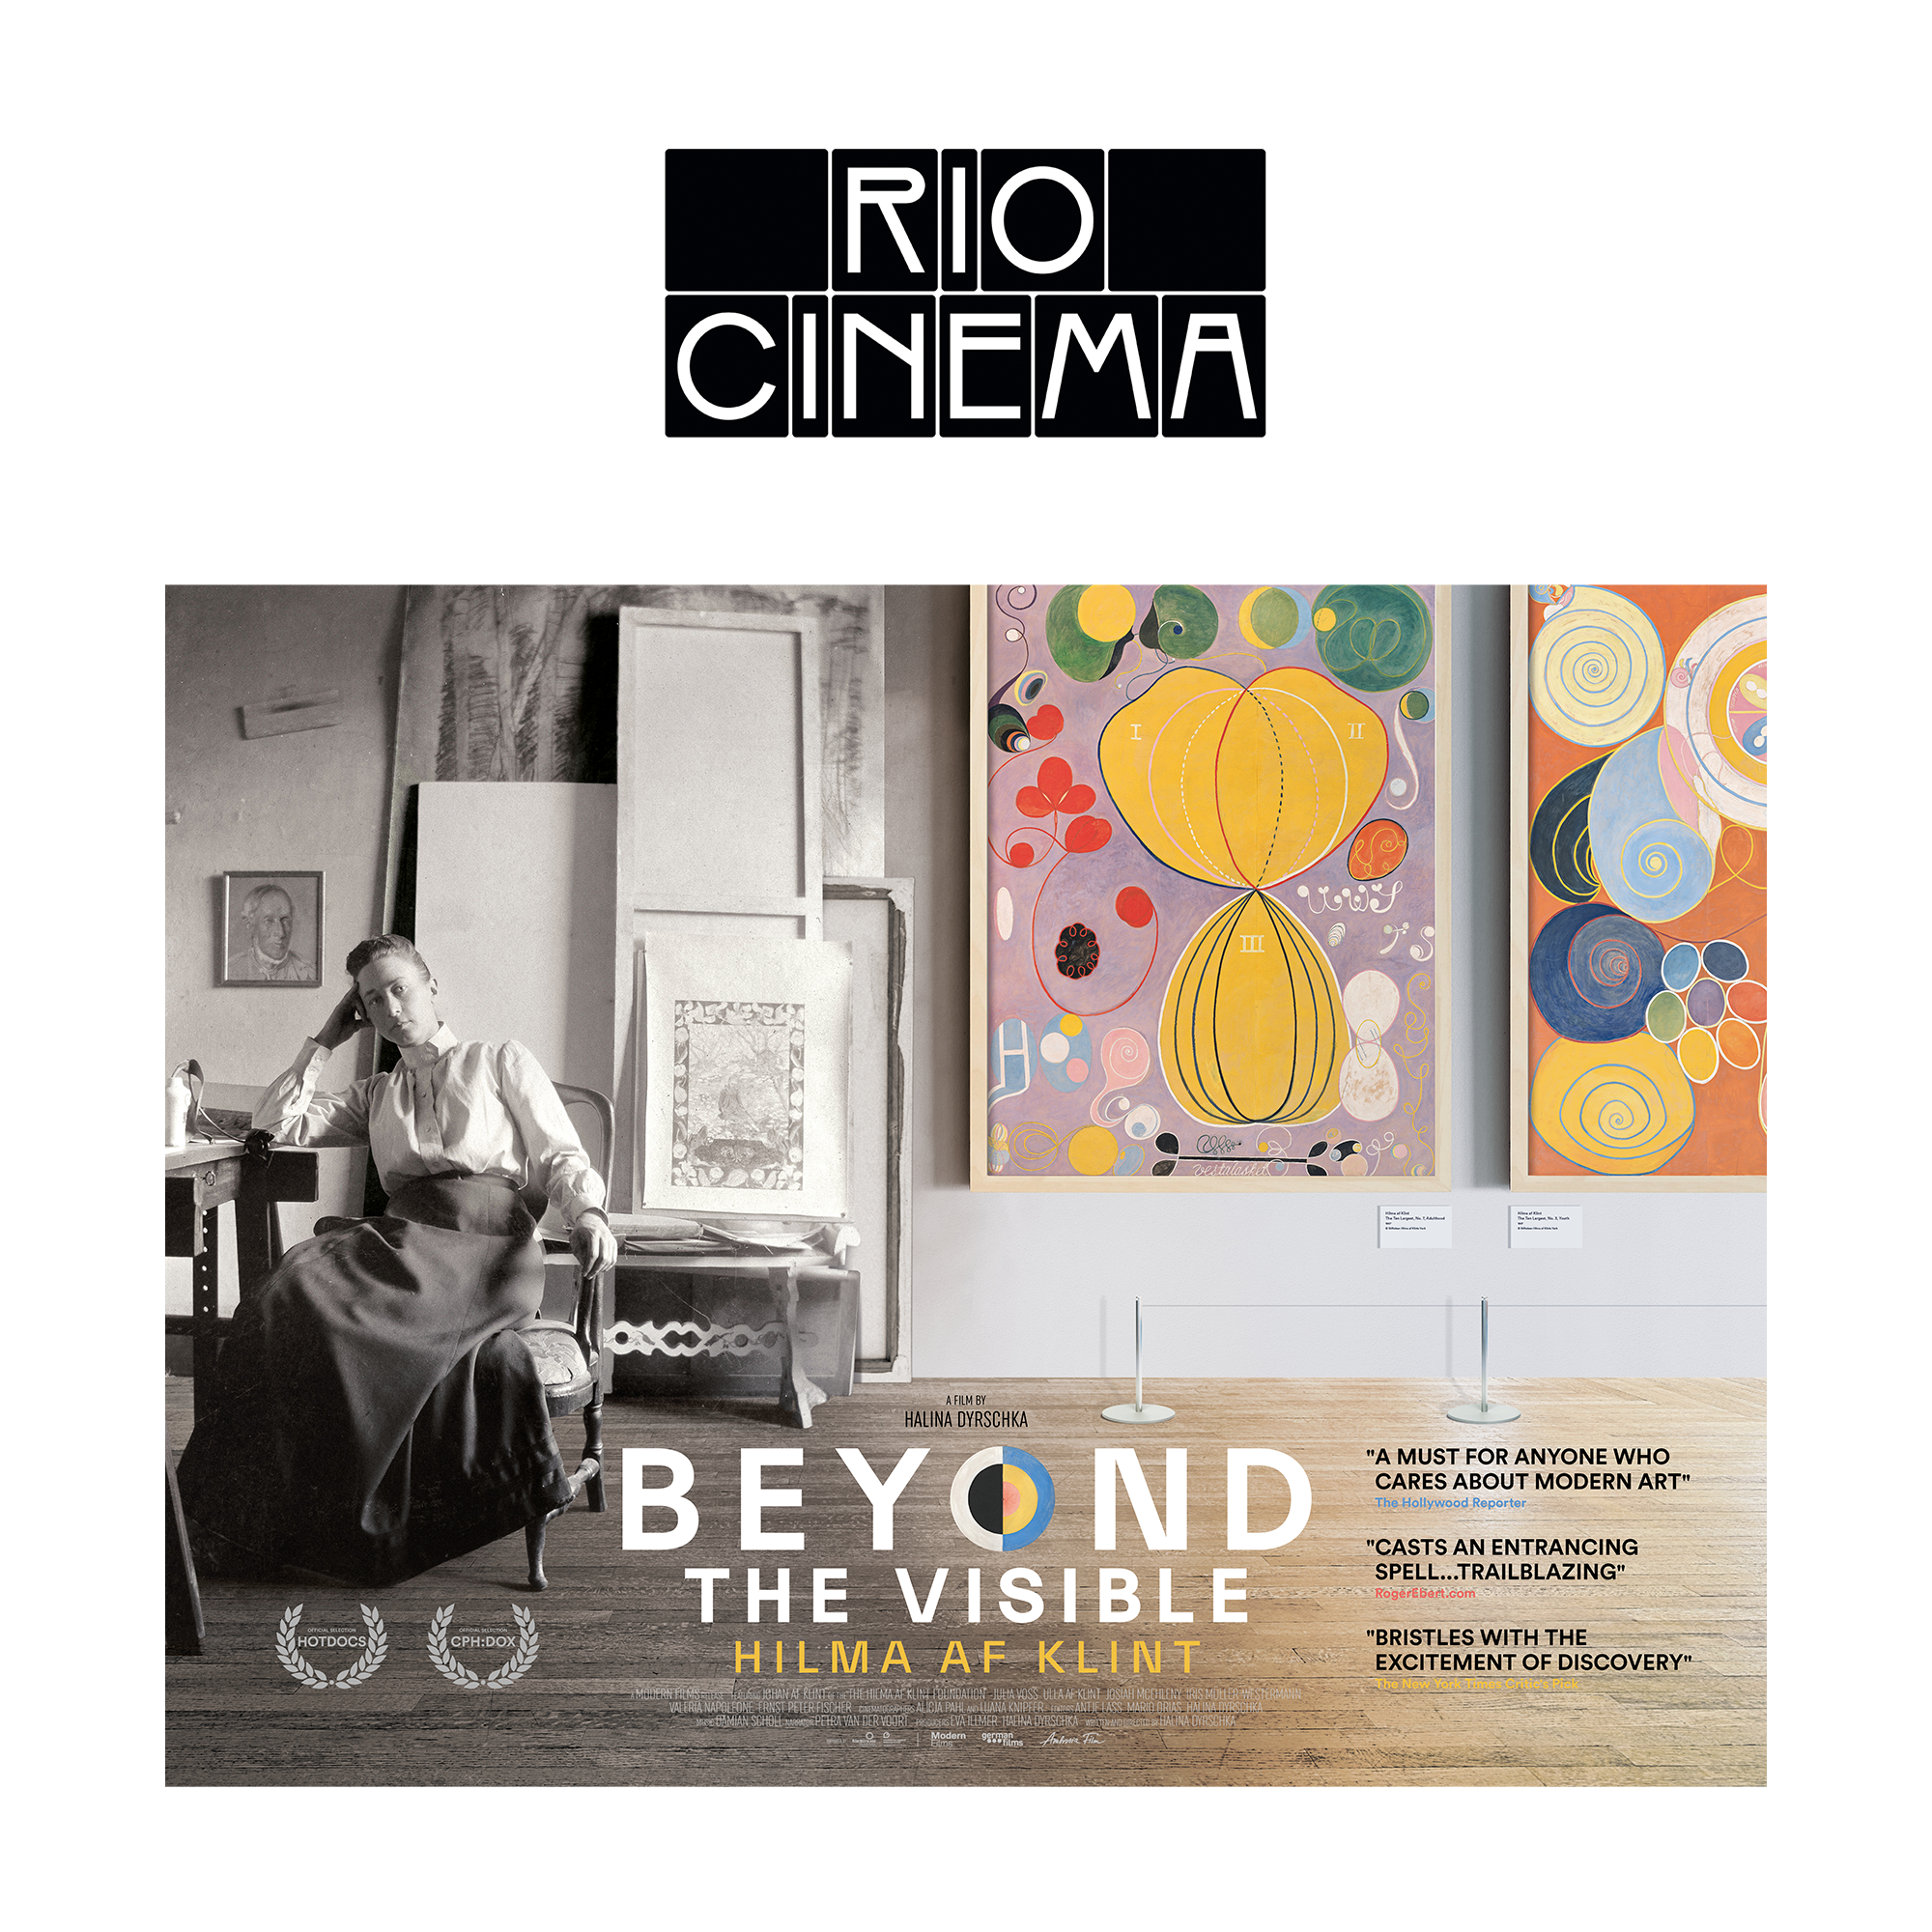 Beyond the Visible: Hilma af Klint at Rio Cinema